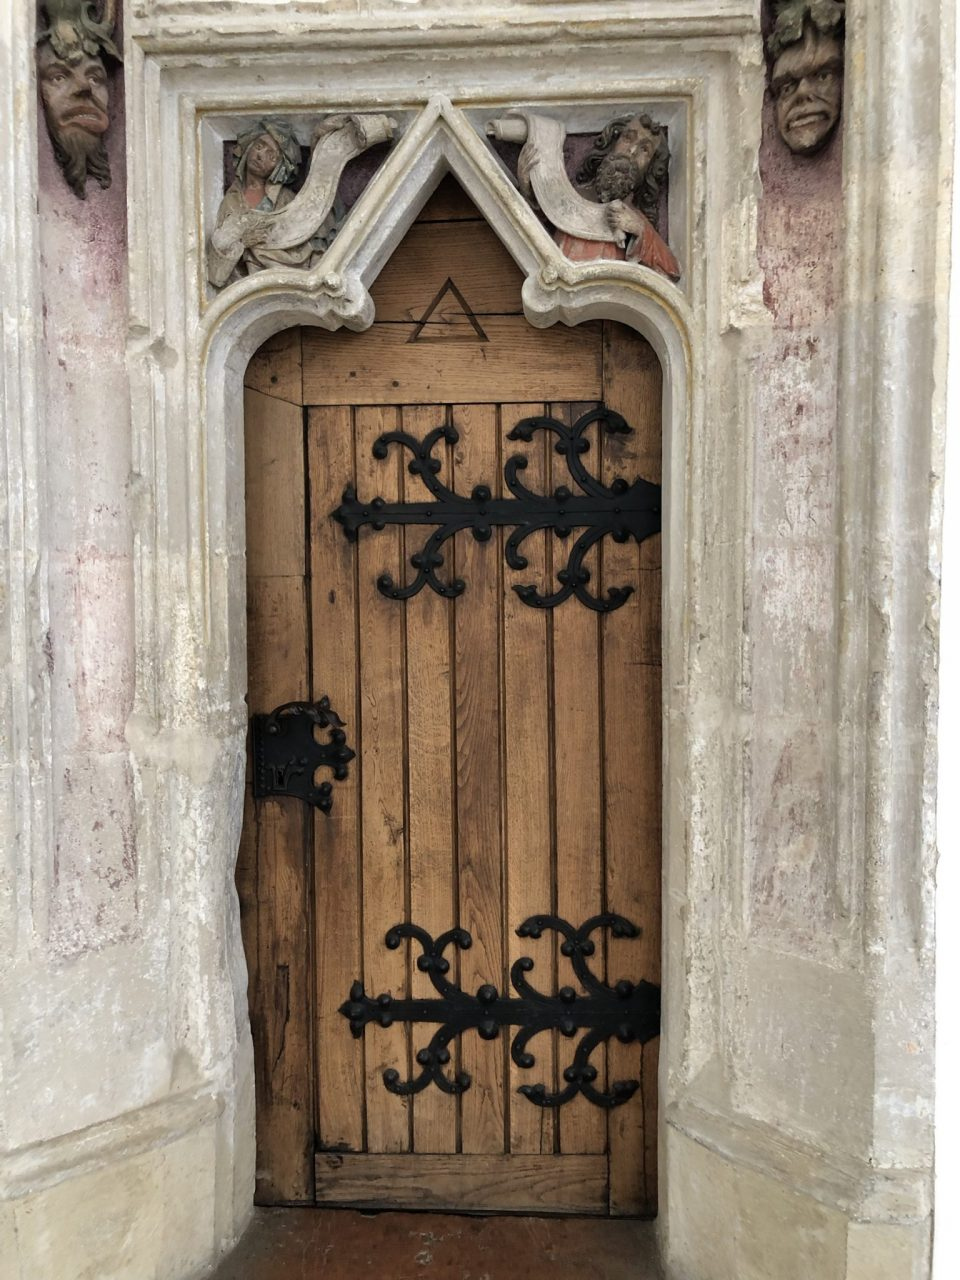 Historic door in Landshut